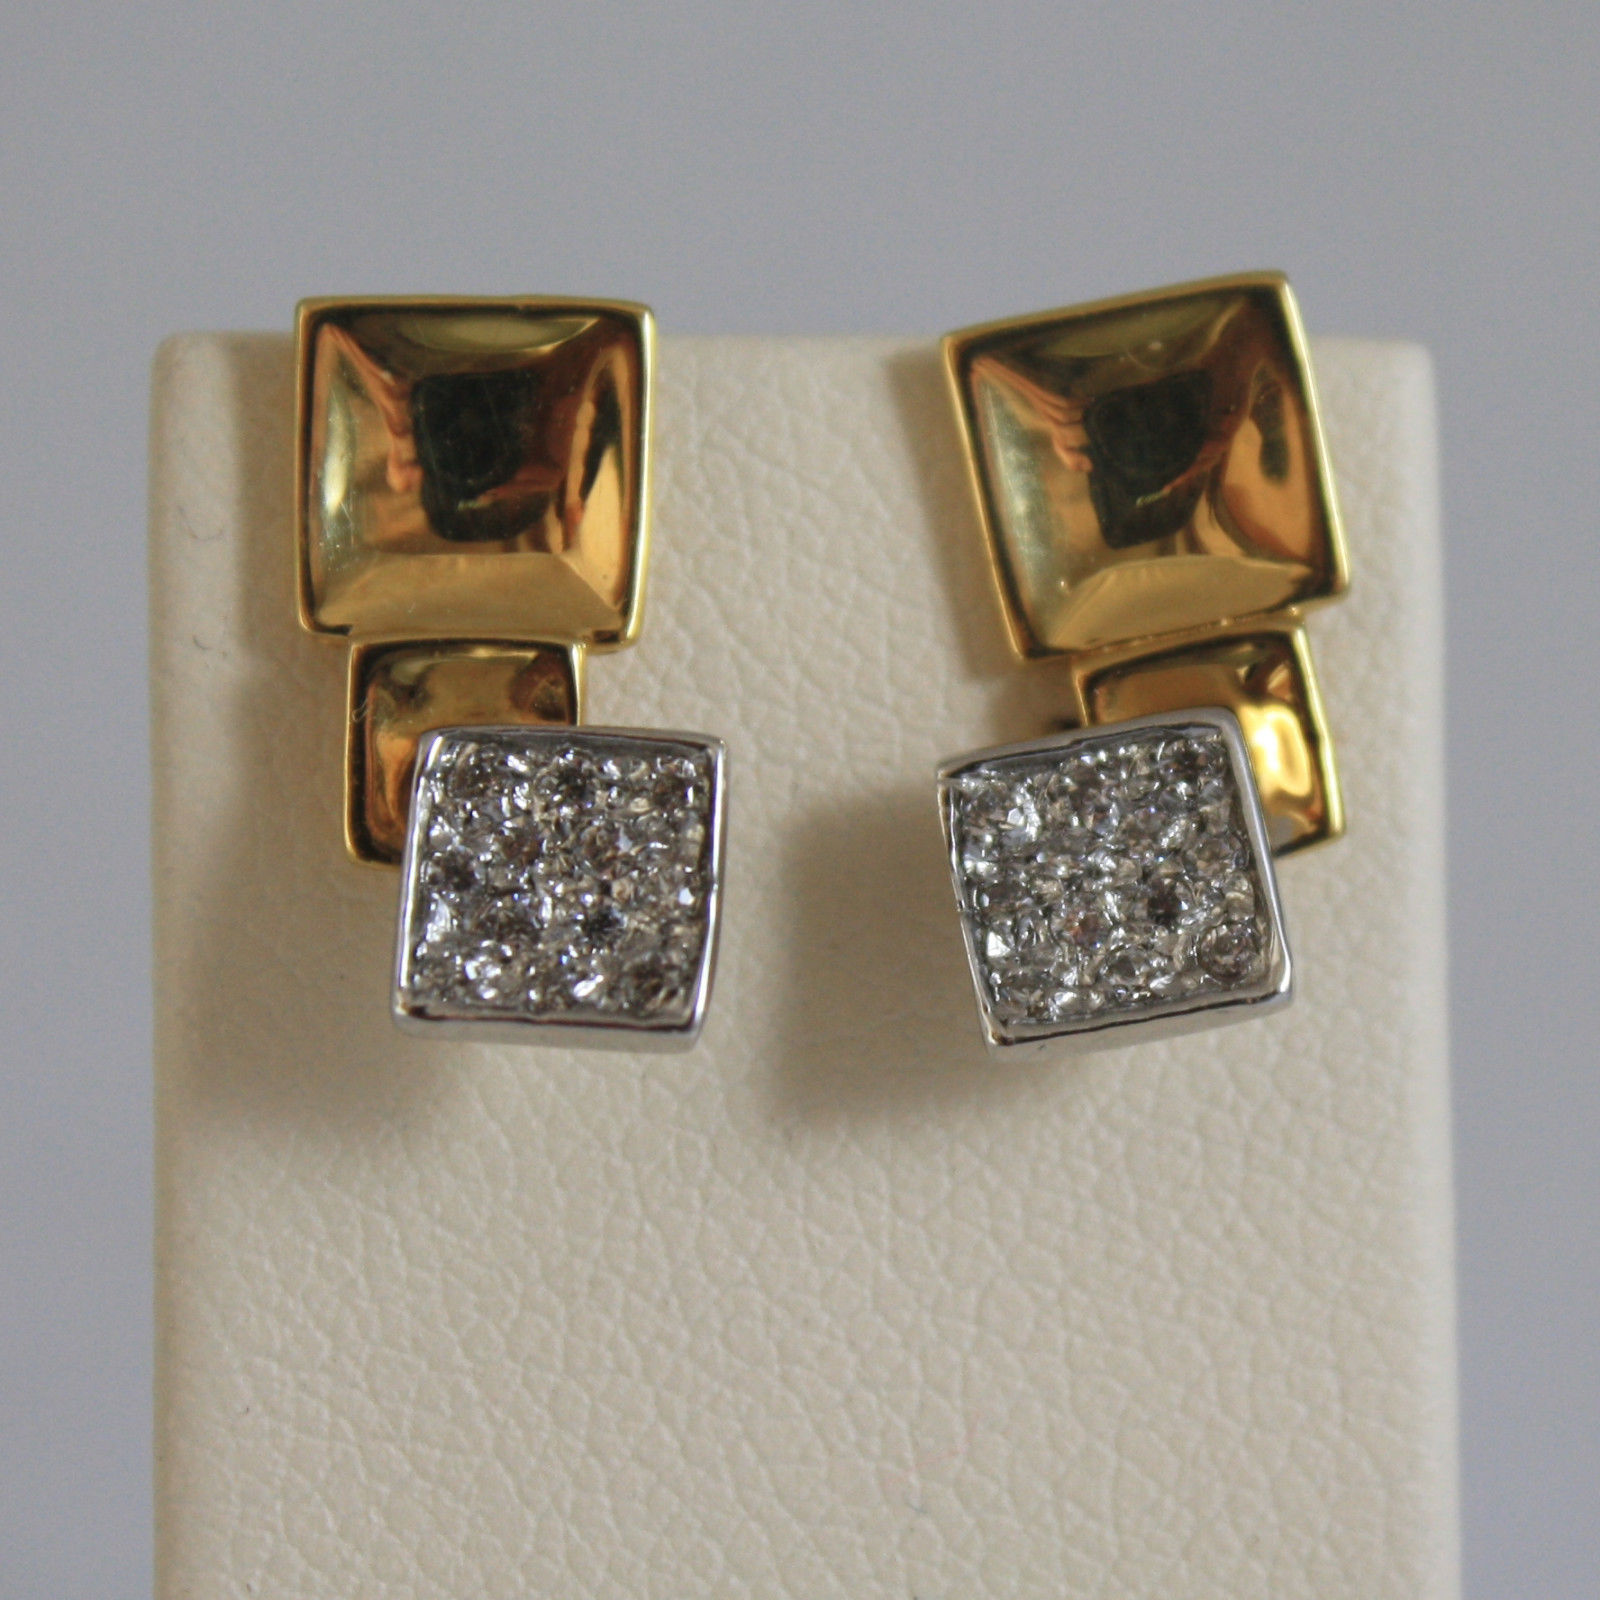 SOLID 18K YELLOW AND WHITE GOLD PENDANT EARRINGS, WITH SQUARE AND ZIRCONIA